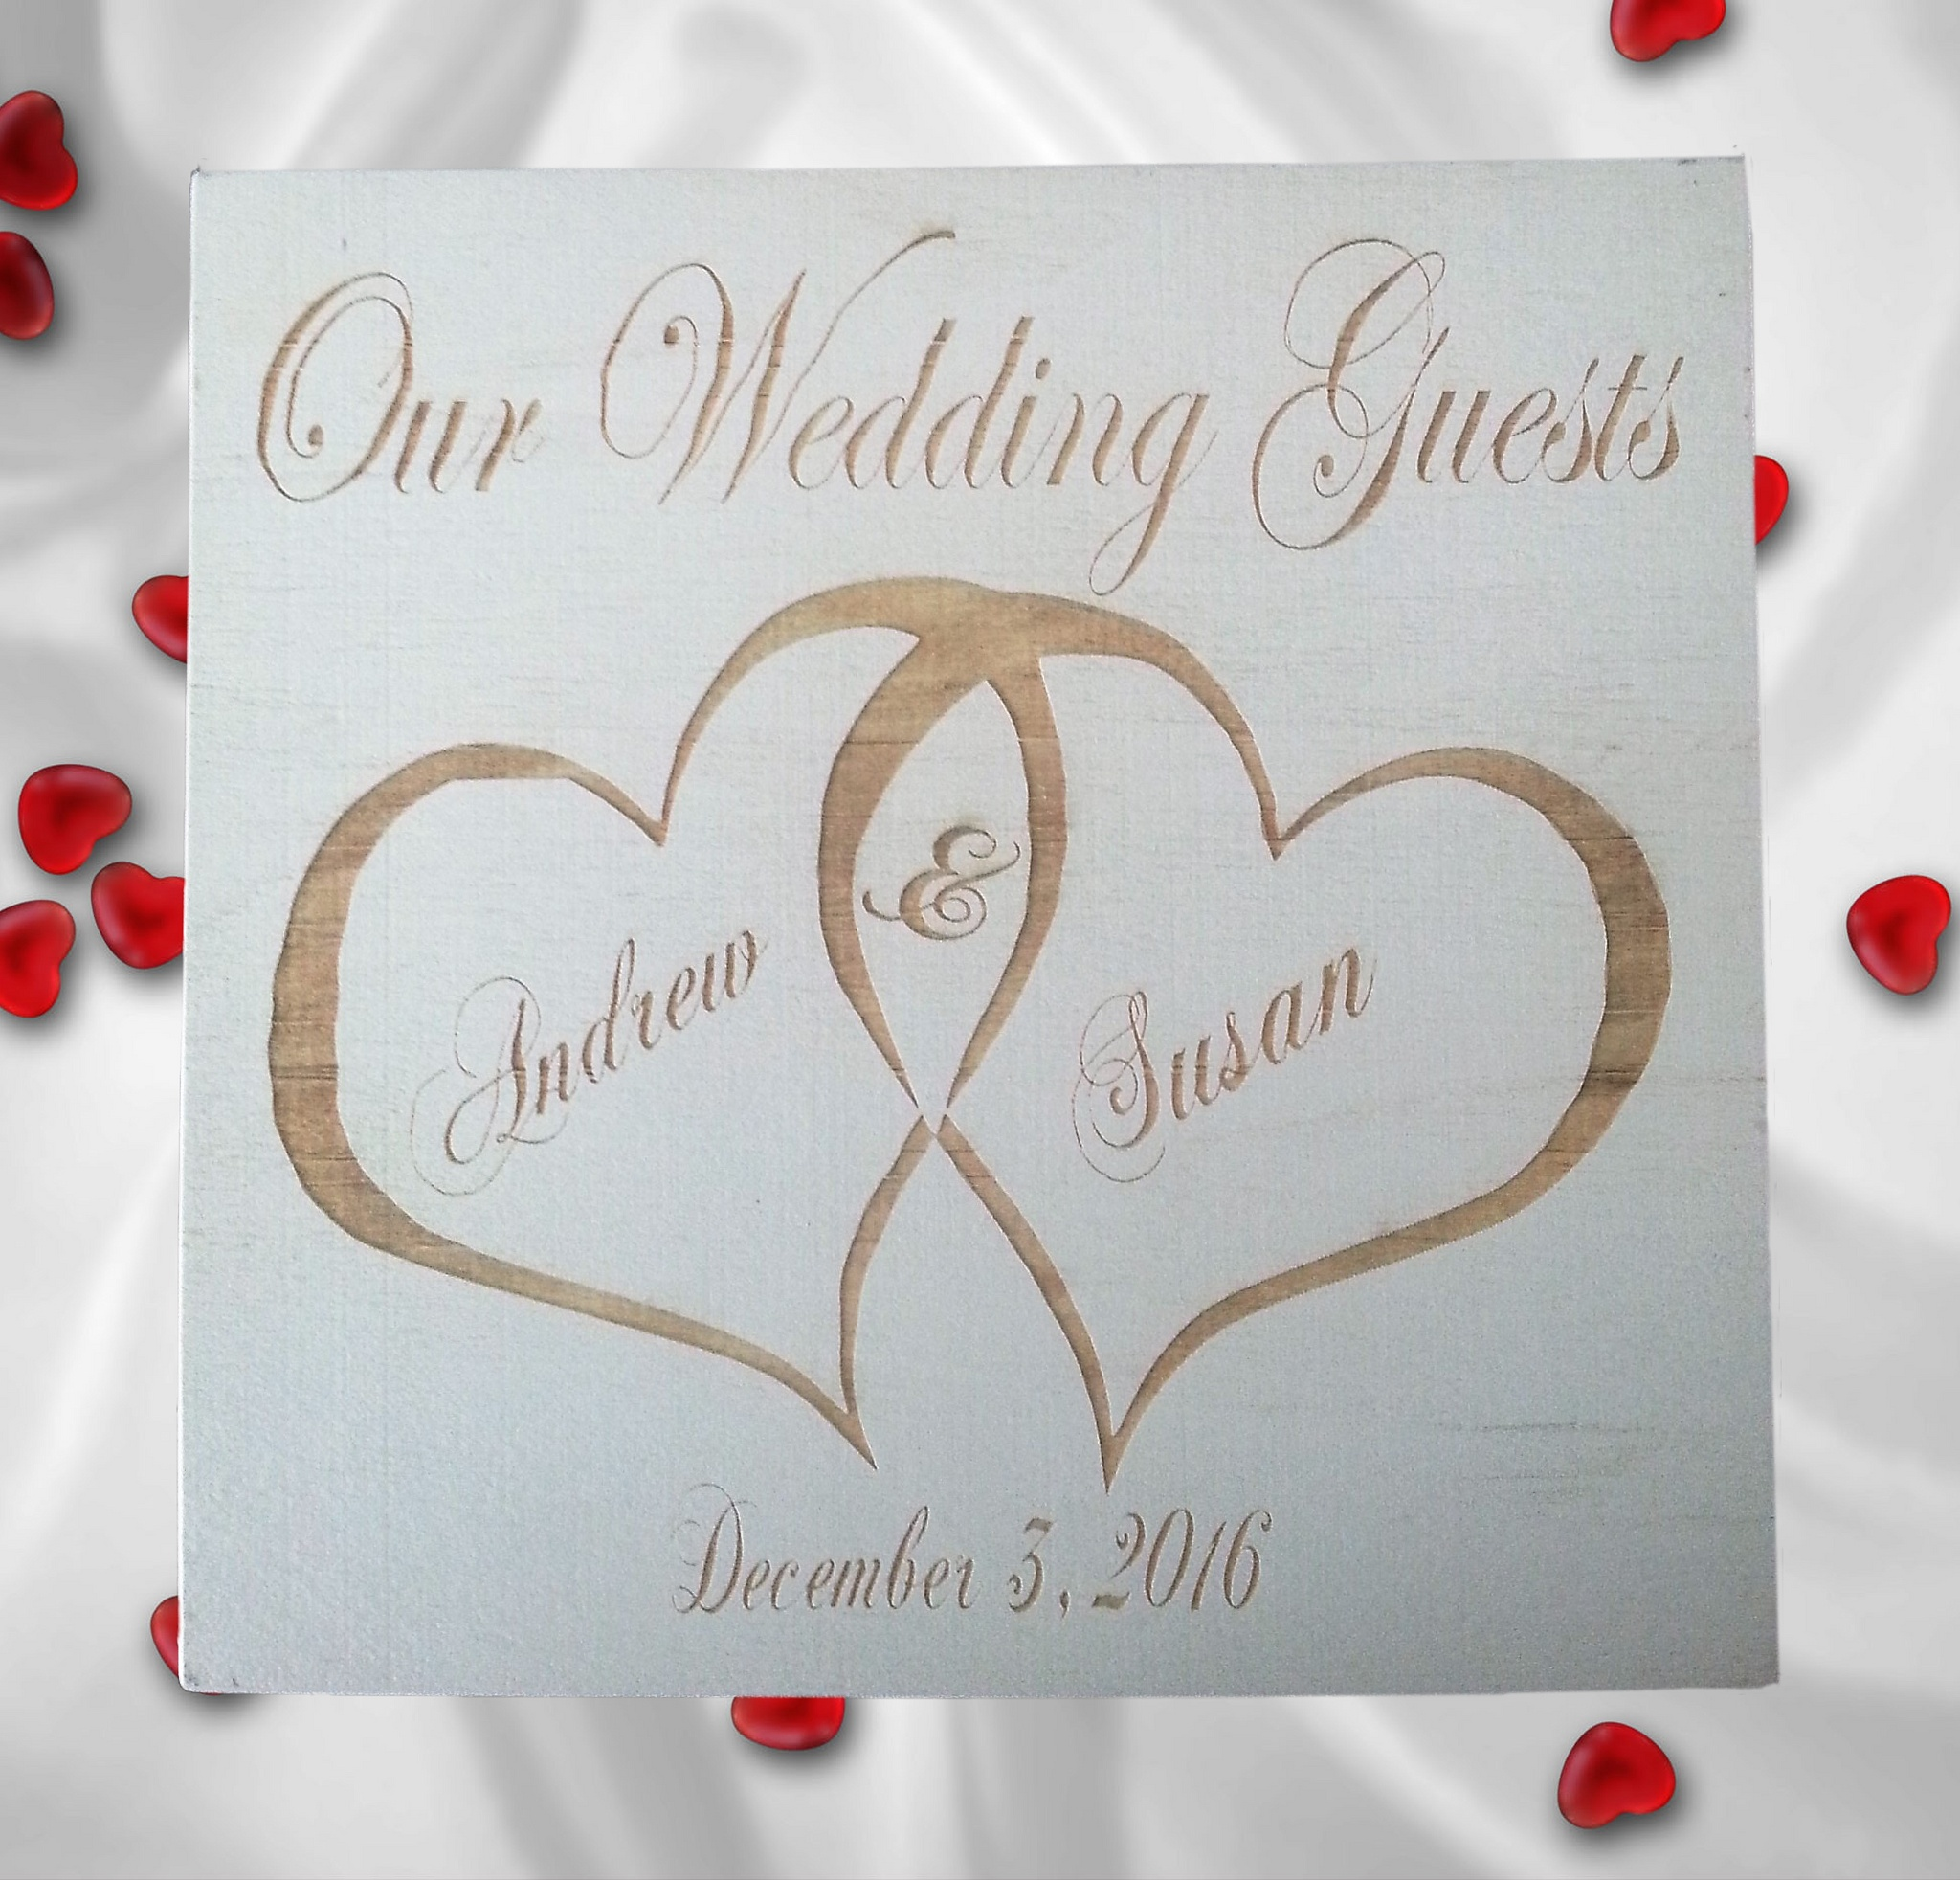 Wedding Guests Book by cwade28643